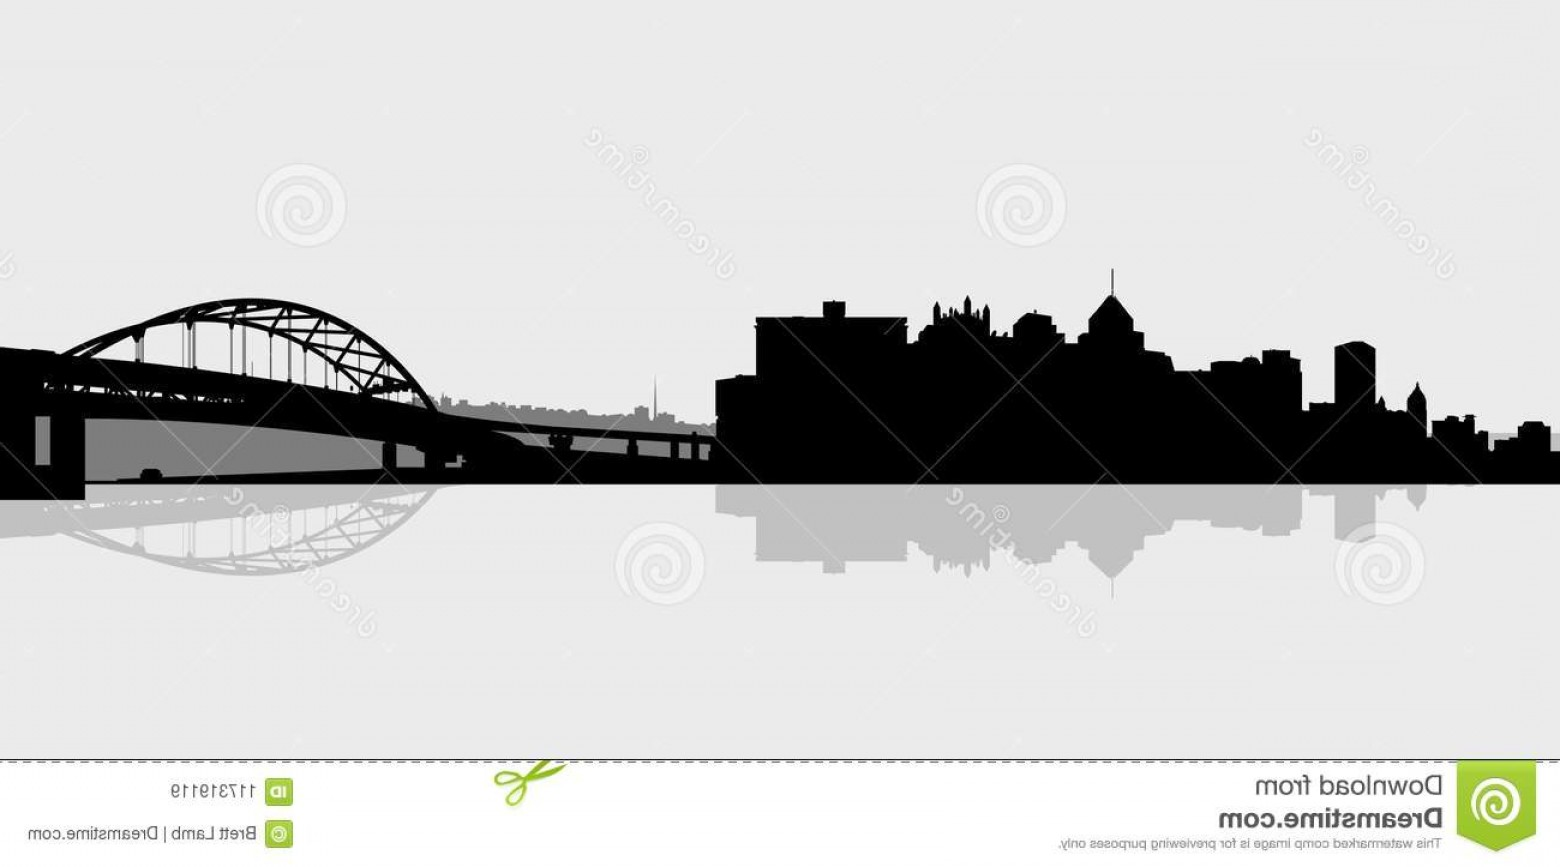 Pittsburgh City Skyline Vector: Skyline Silhouette Downtown City Pittsburgh Pennsylvania Usa View Across River Showing Bridge Image